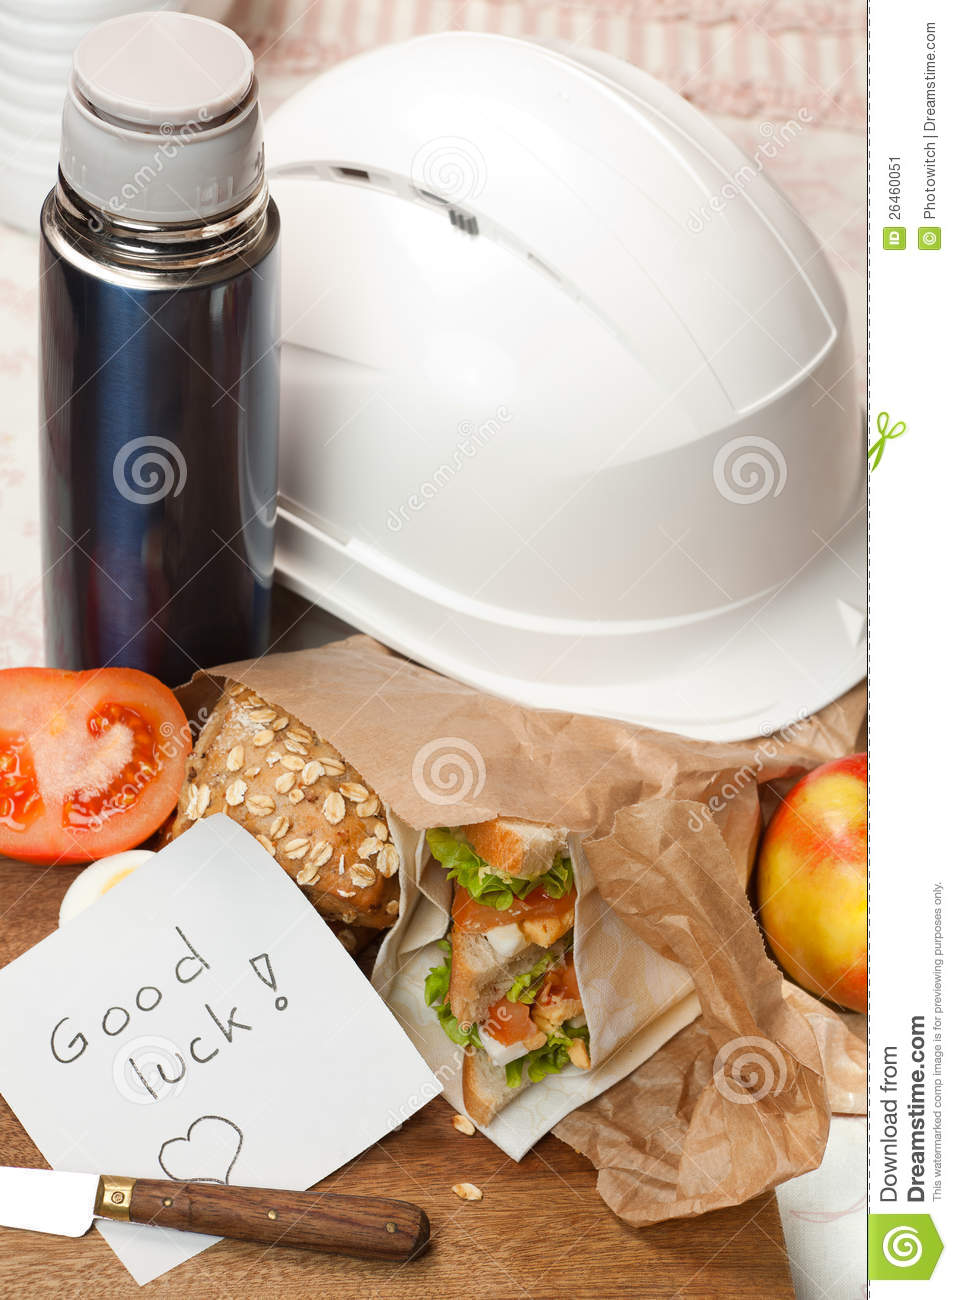 good luck on first day at work stock image image 26460051 good luck on first day at work